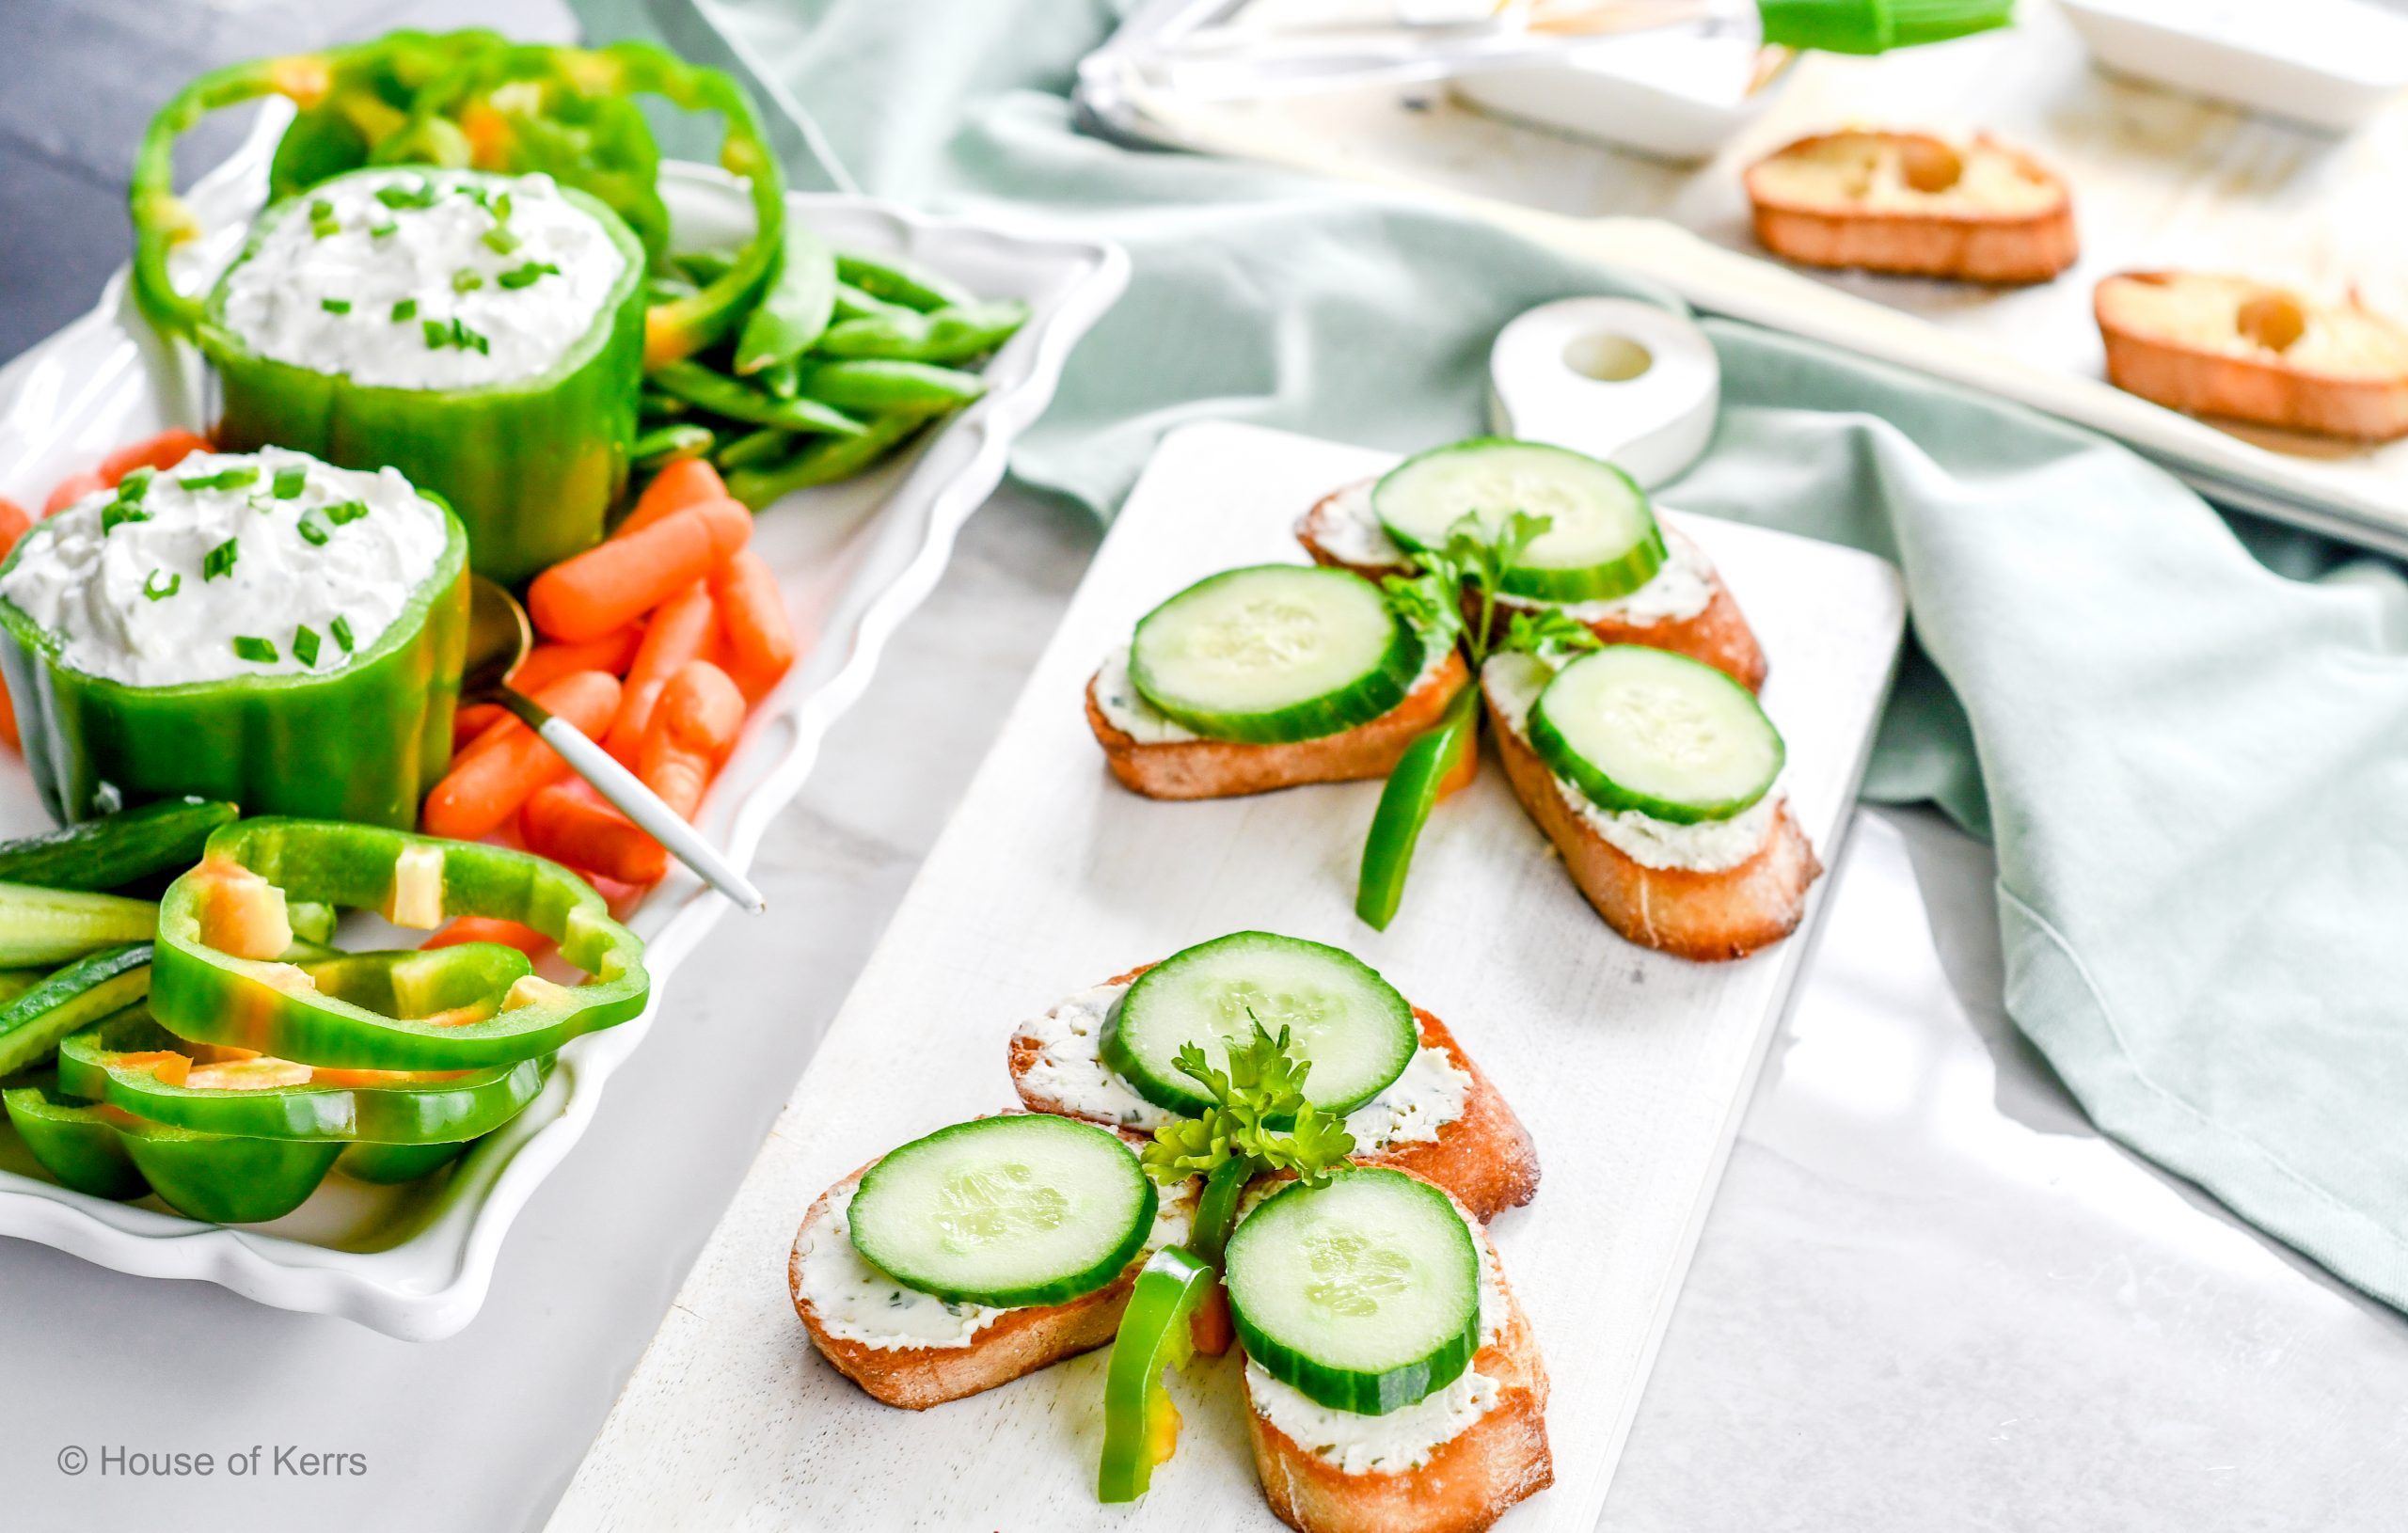 Easy Green Recipes for St. Patrick's Day | Shamrock Shaped Food | HouseofKerrs.com